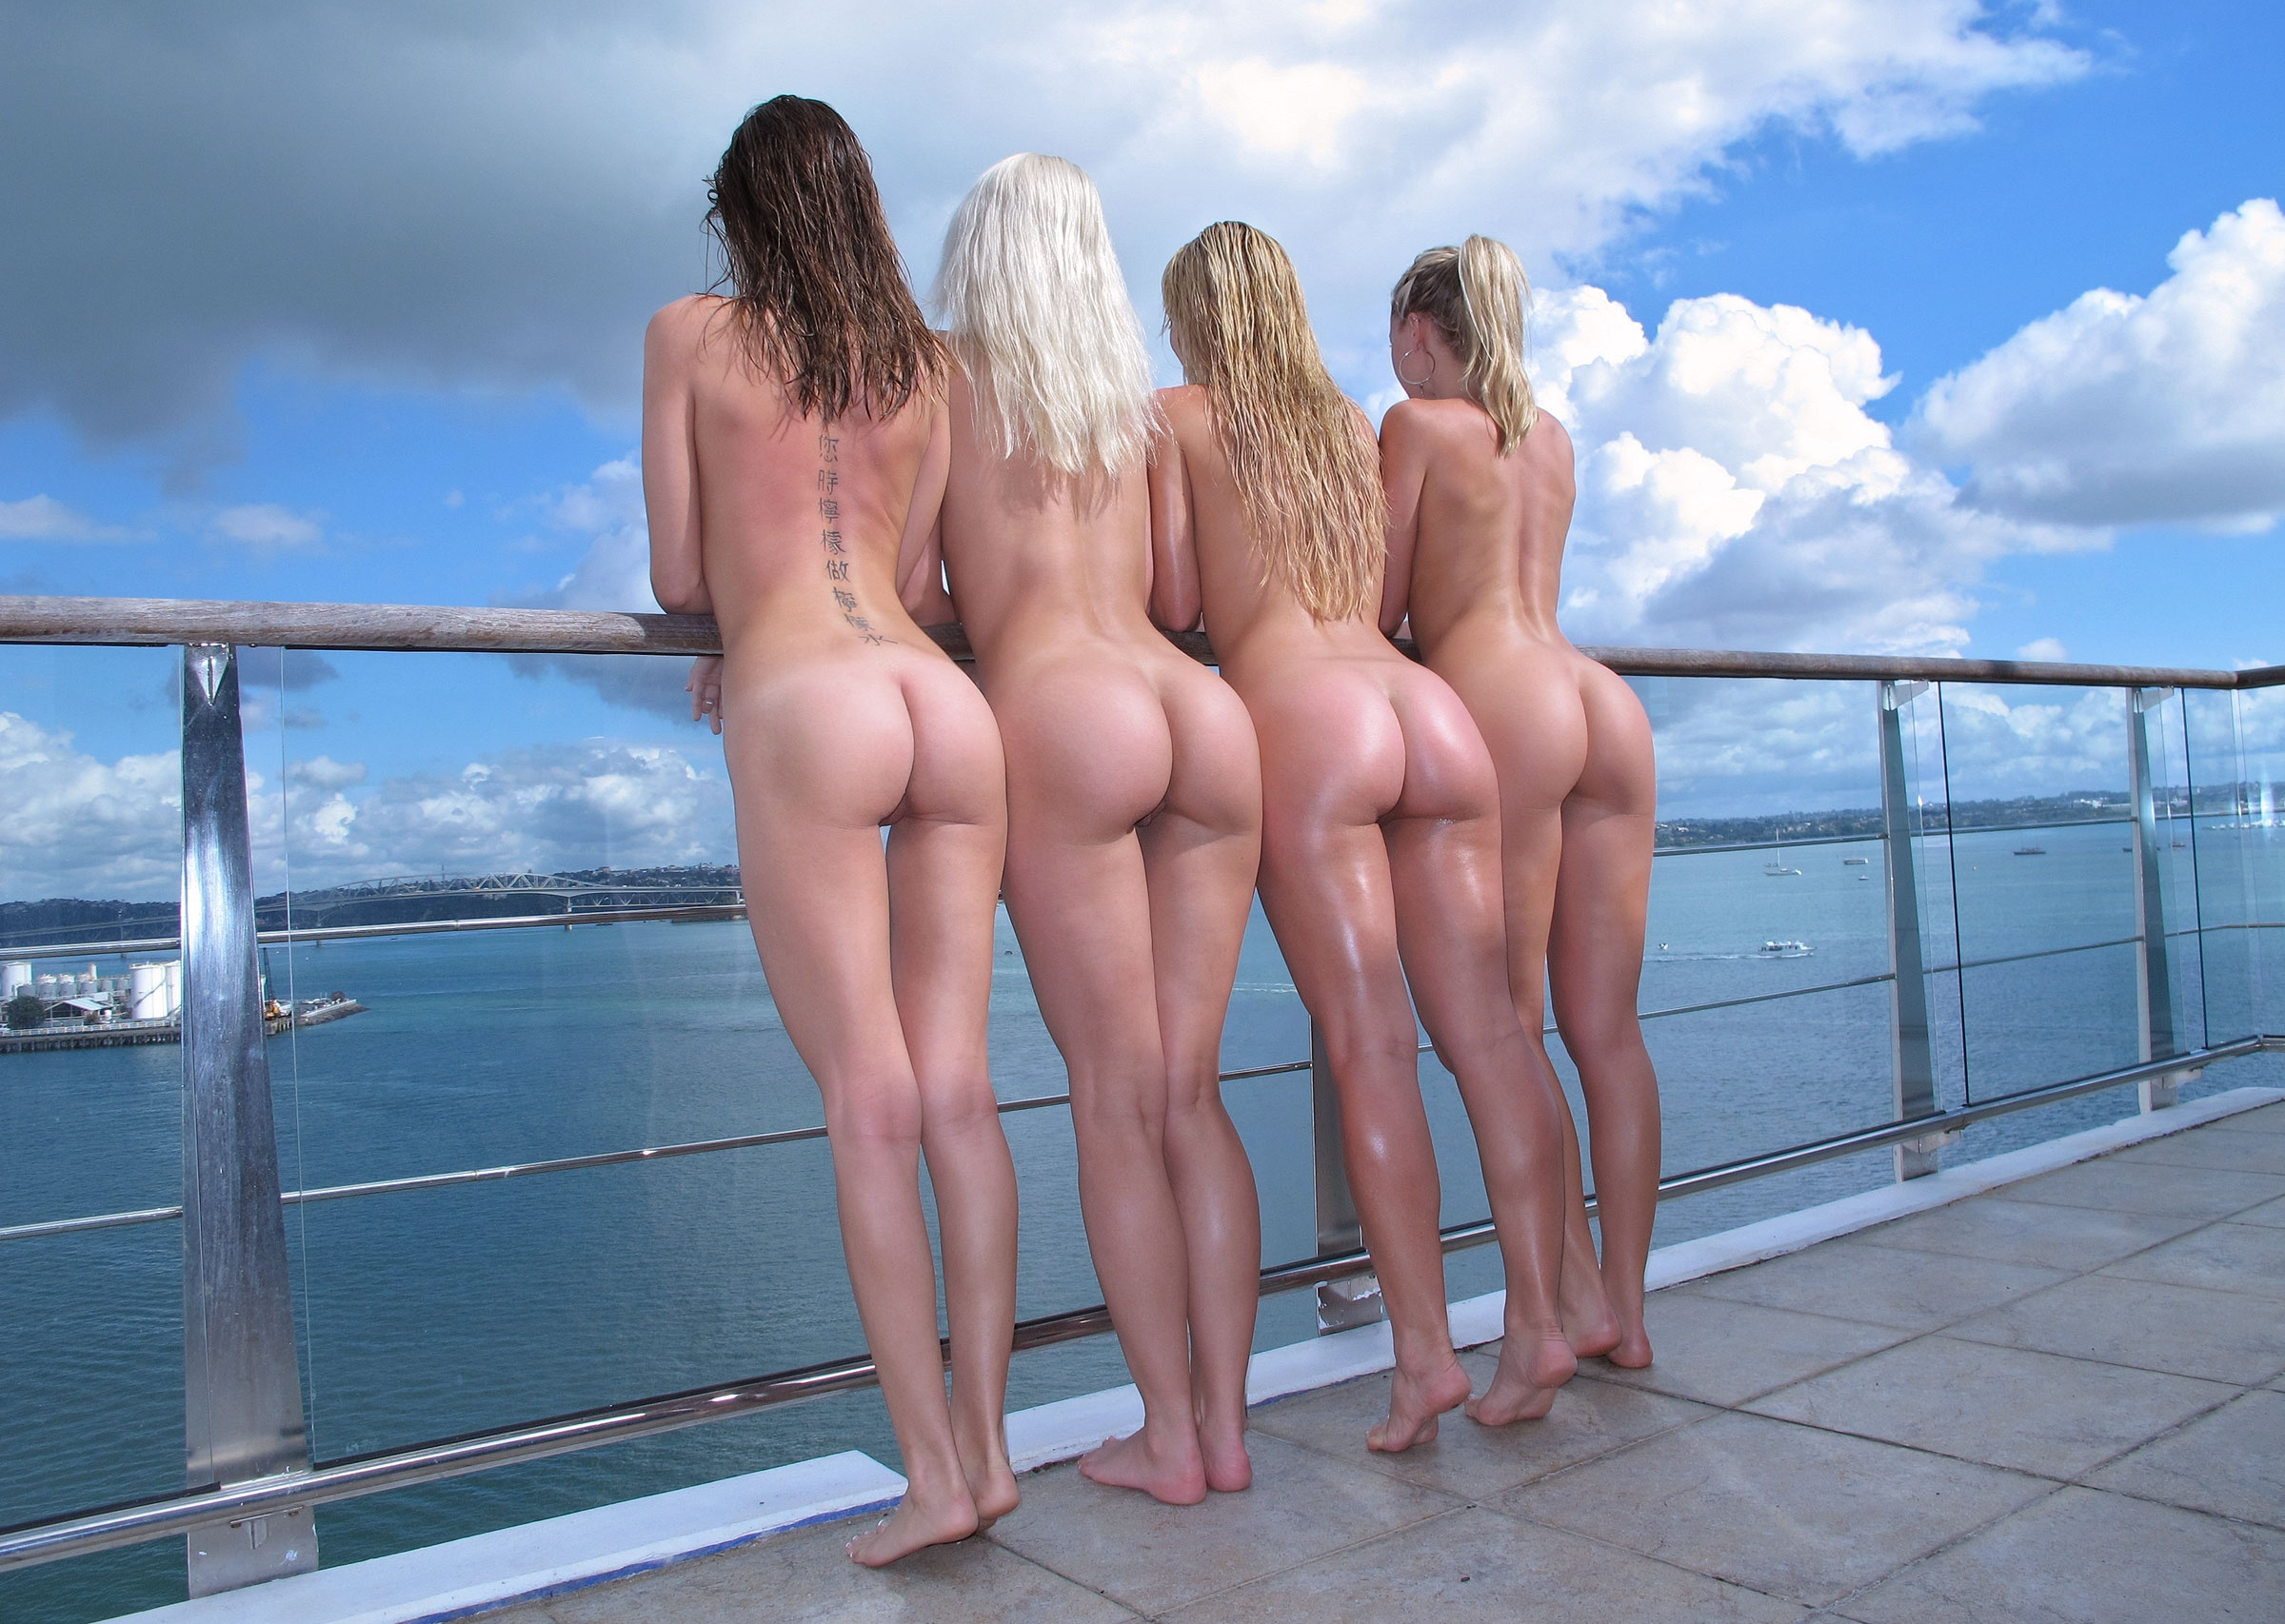 Cayman island young girls ass